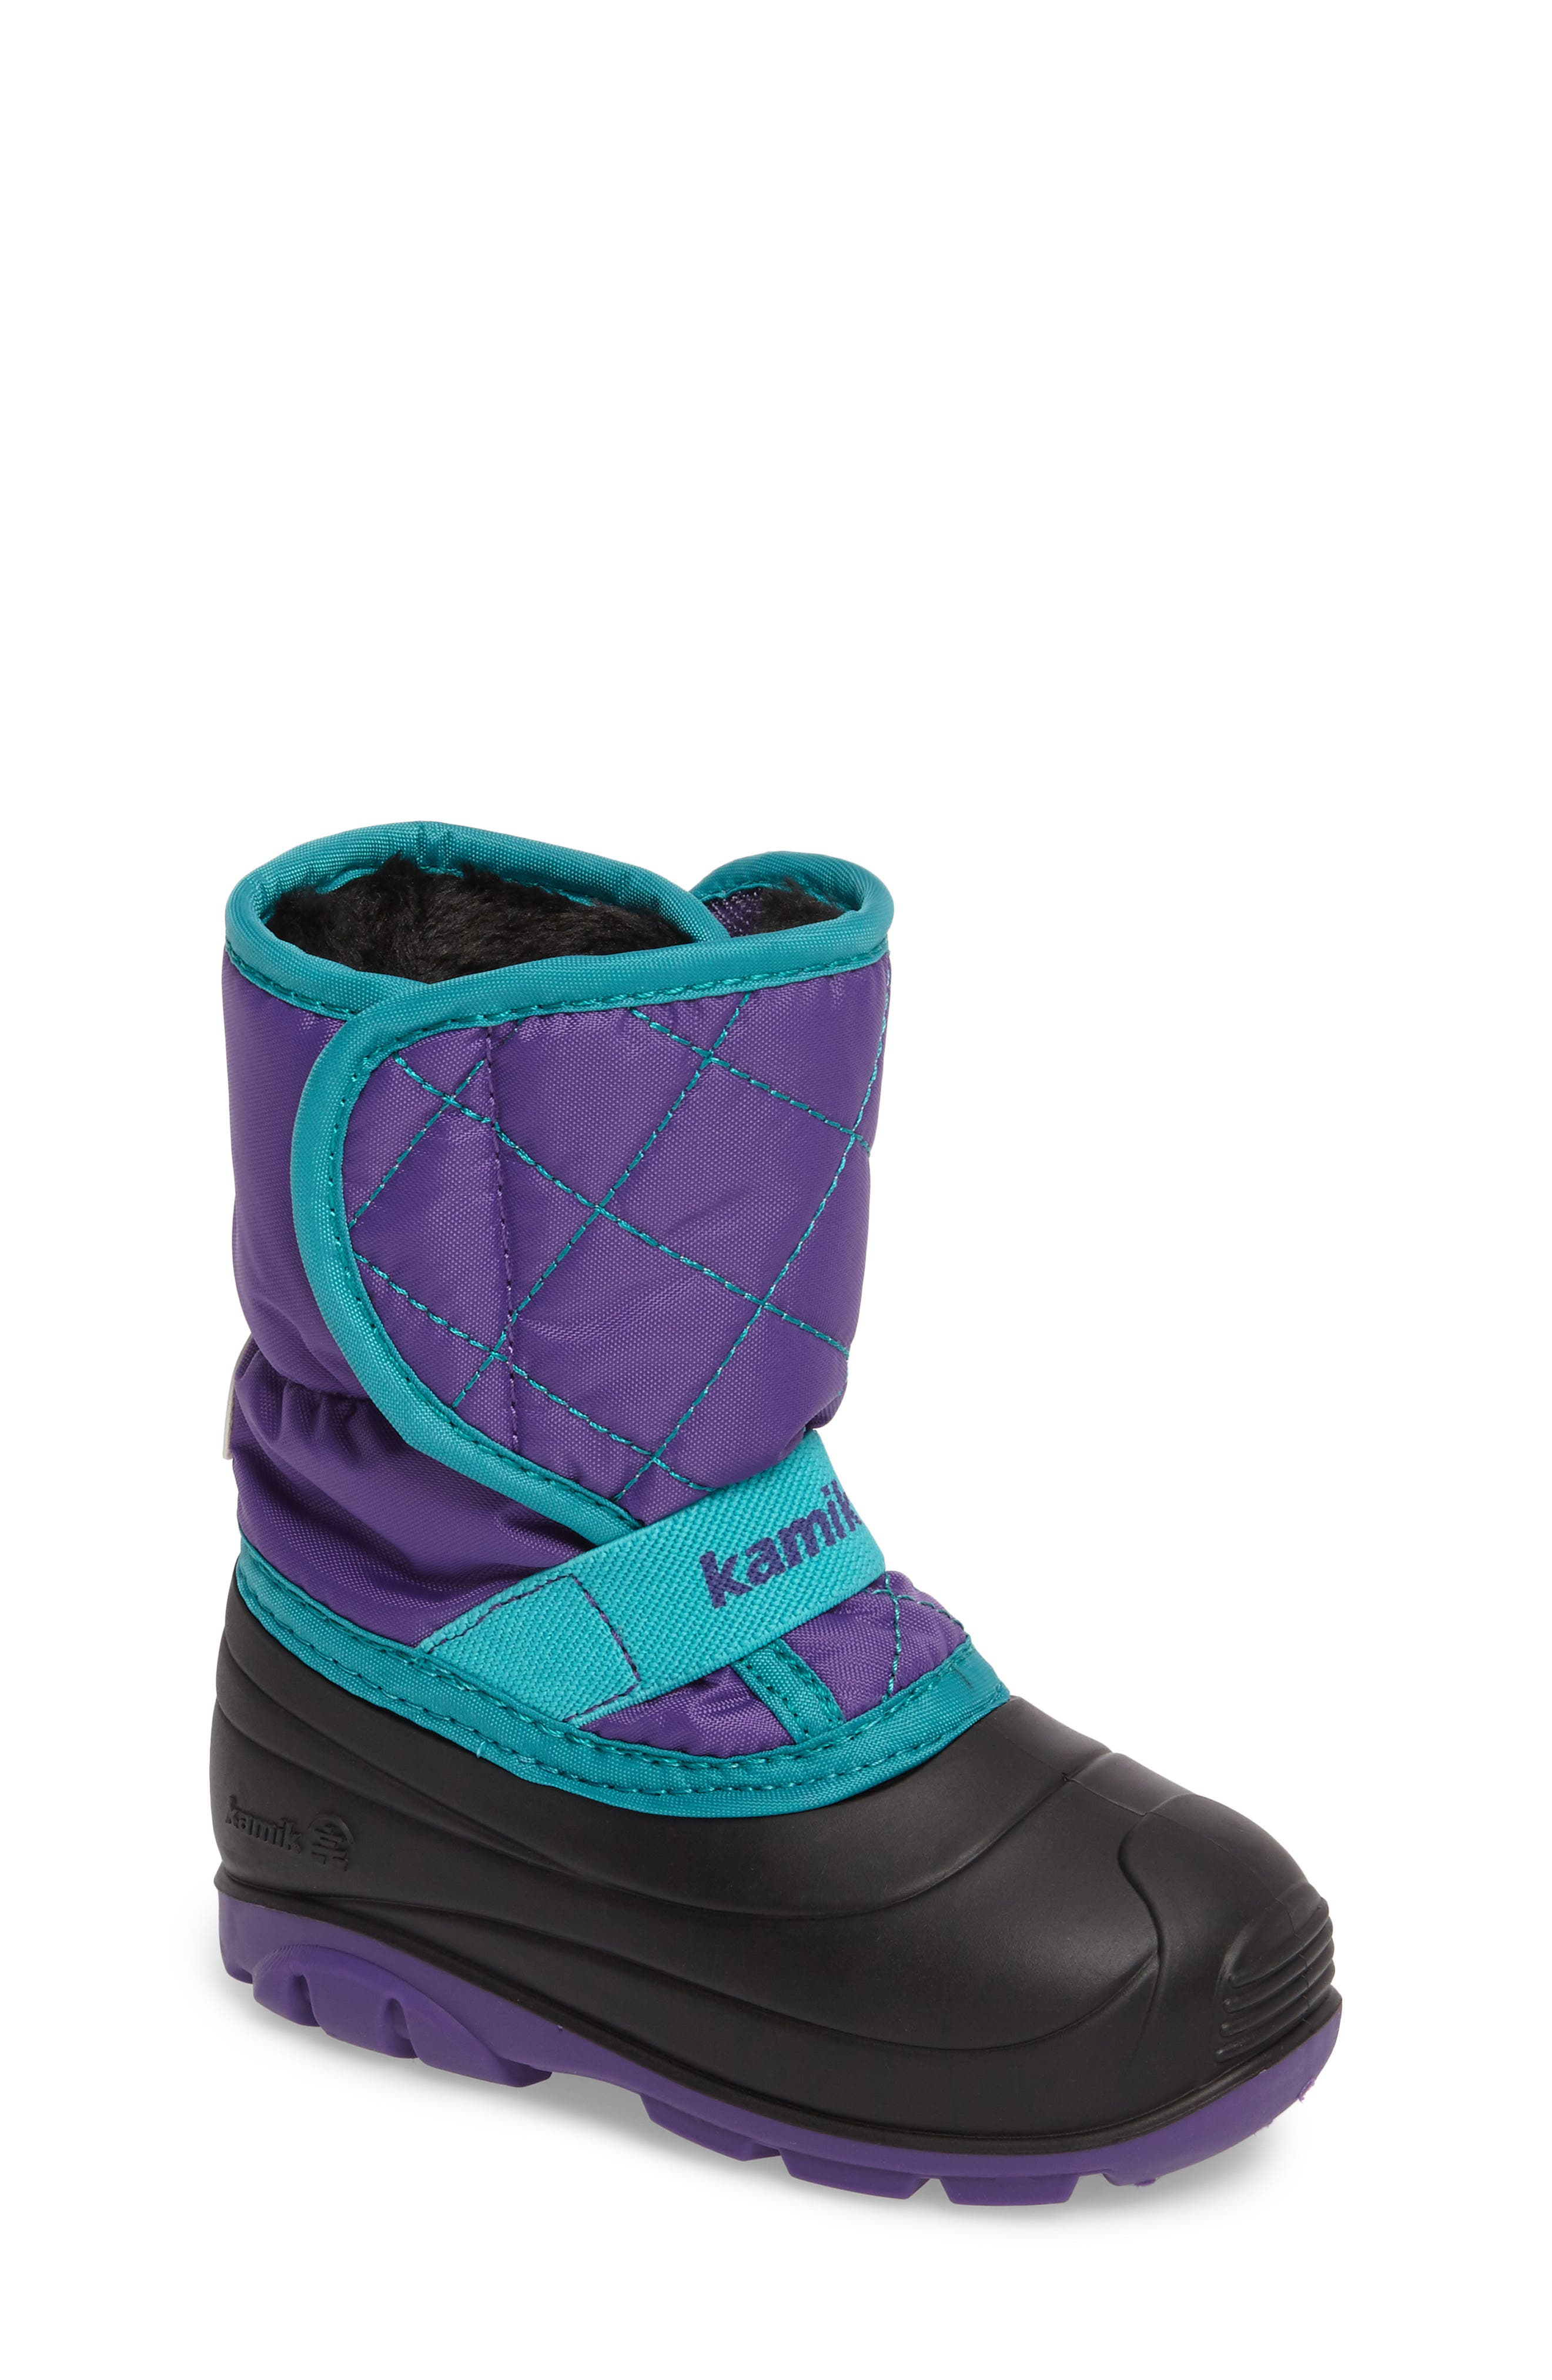 Alternate Image 1 Selected - Kamik Pika2 Faux Fur Insulated Waterproof Snow Boot (Walker & Toddler)